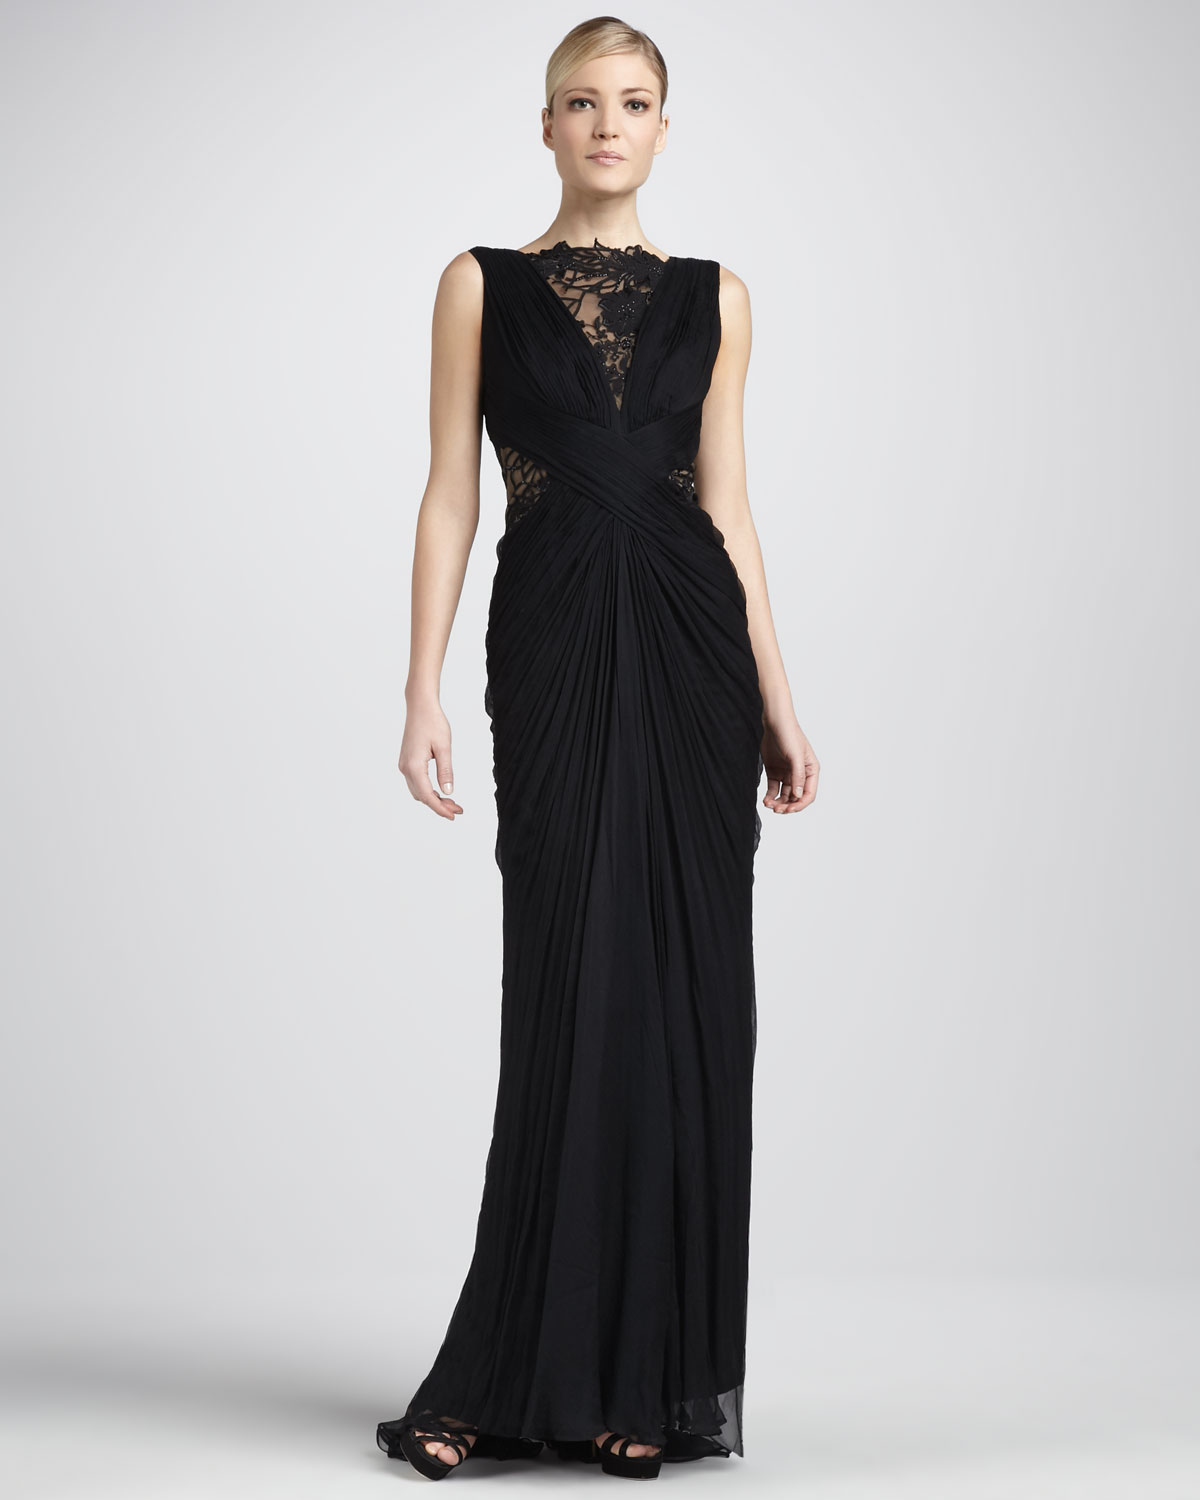 Lyst - Tadashi Shoji Sleeveless Lace and Sequined Illusion Back Gown ...